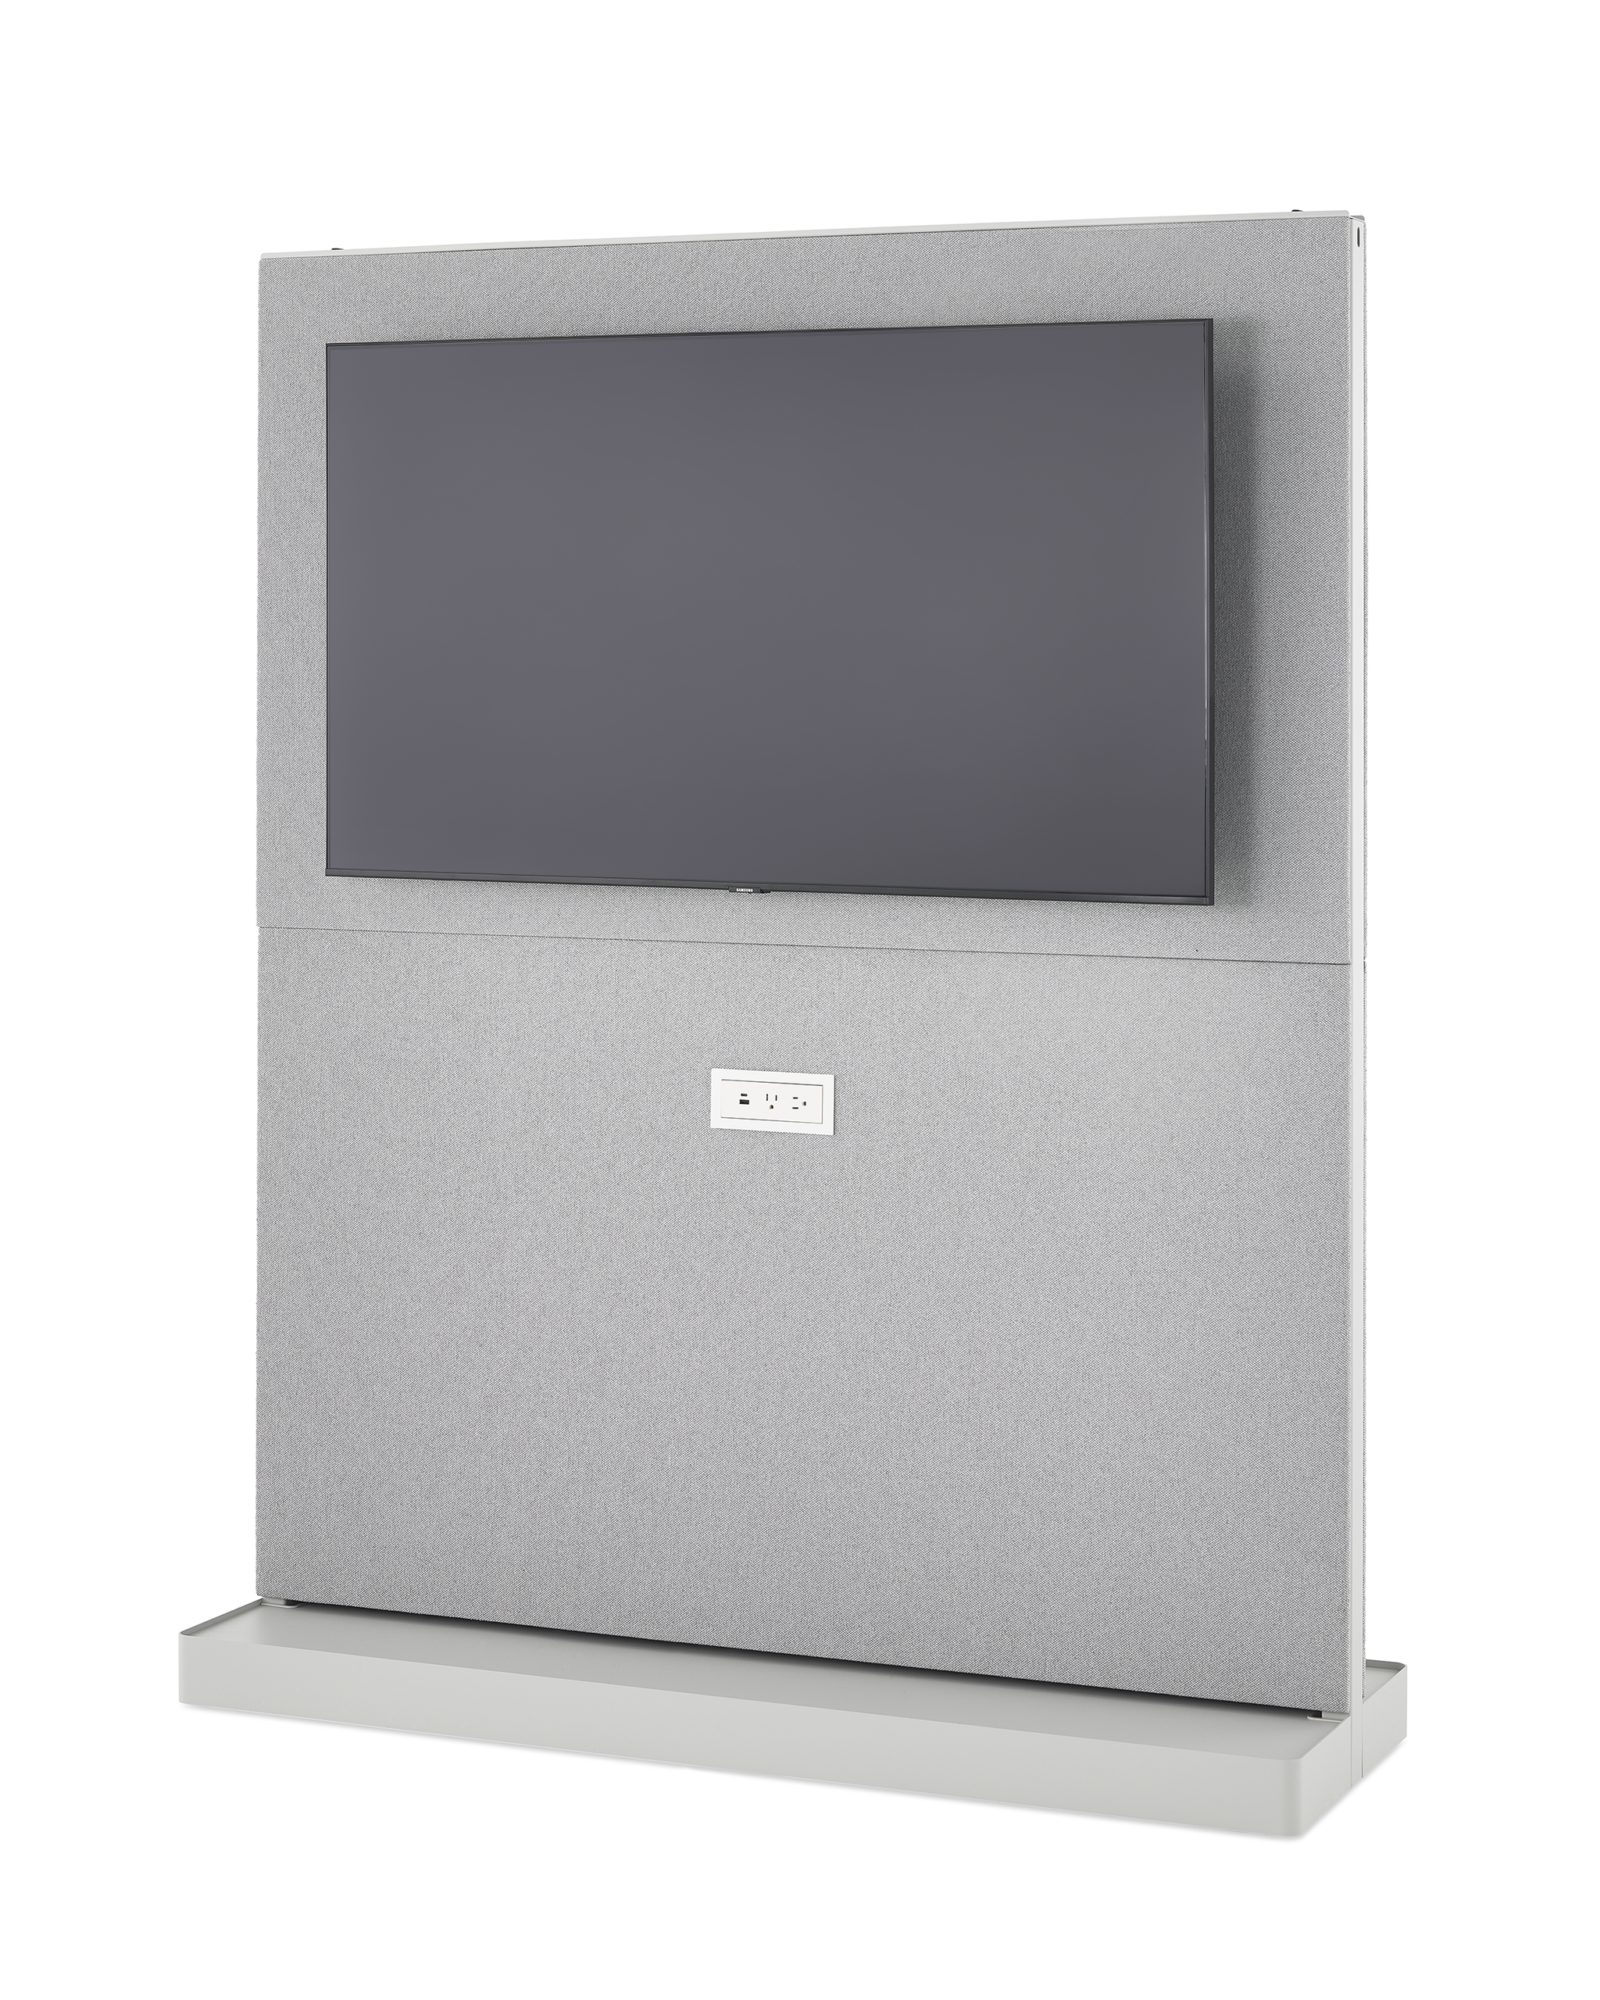 An Agile Wall with a grey tackable fabric tile, a mounted monitor, and integrated power receptacle.